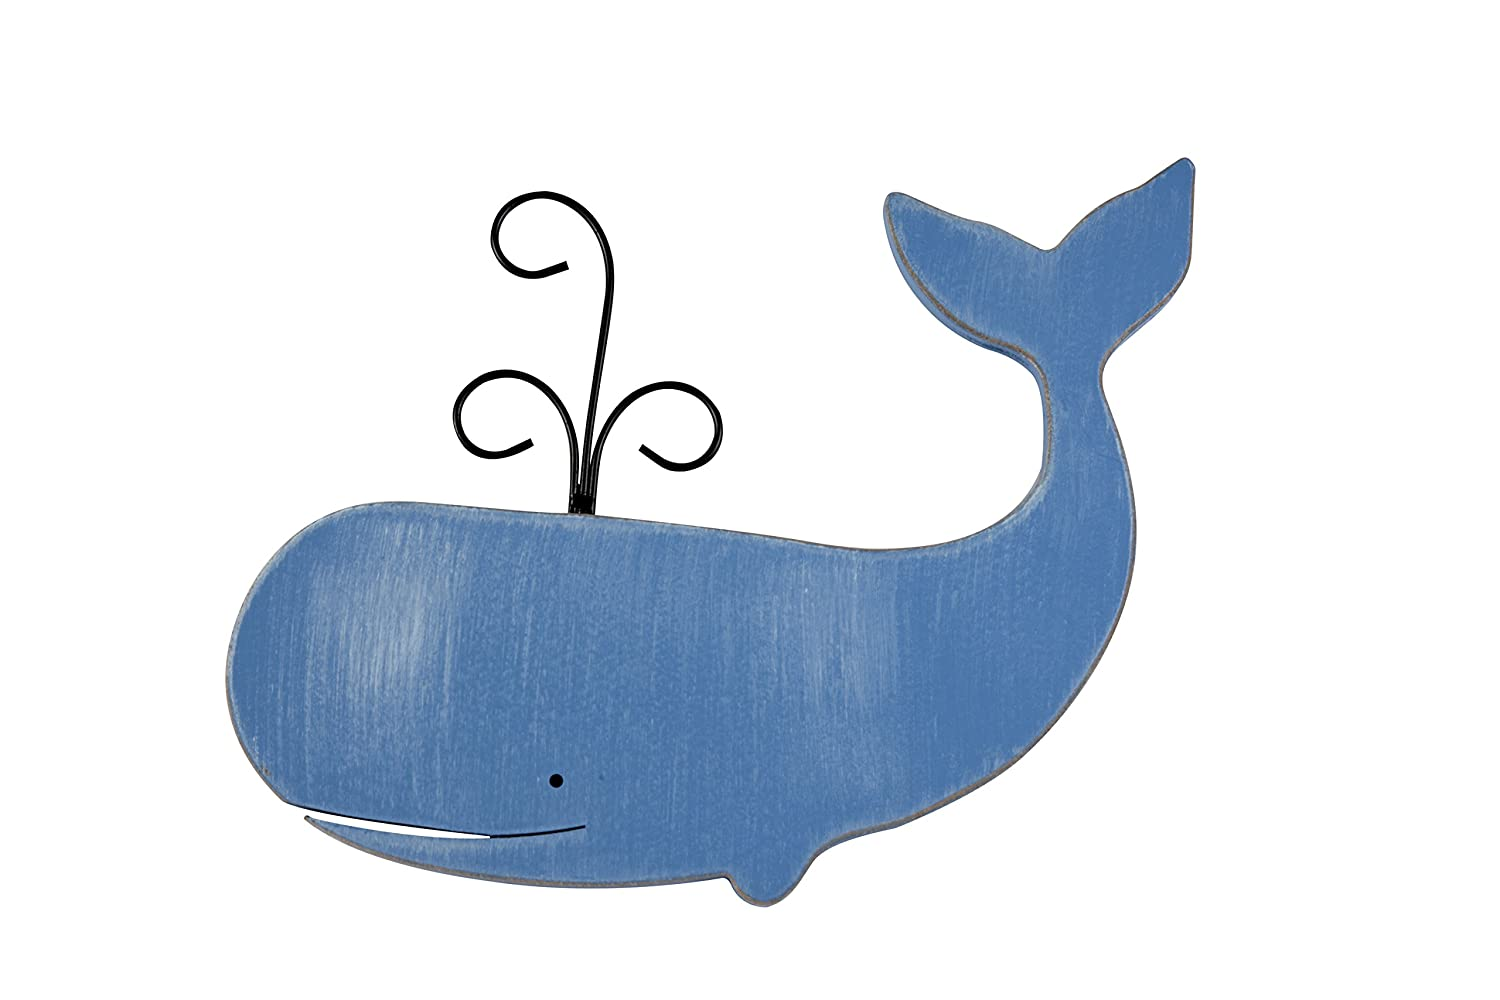 Sadie & Scout Hampton - Whale Shaped Wall Décor